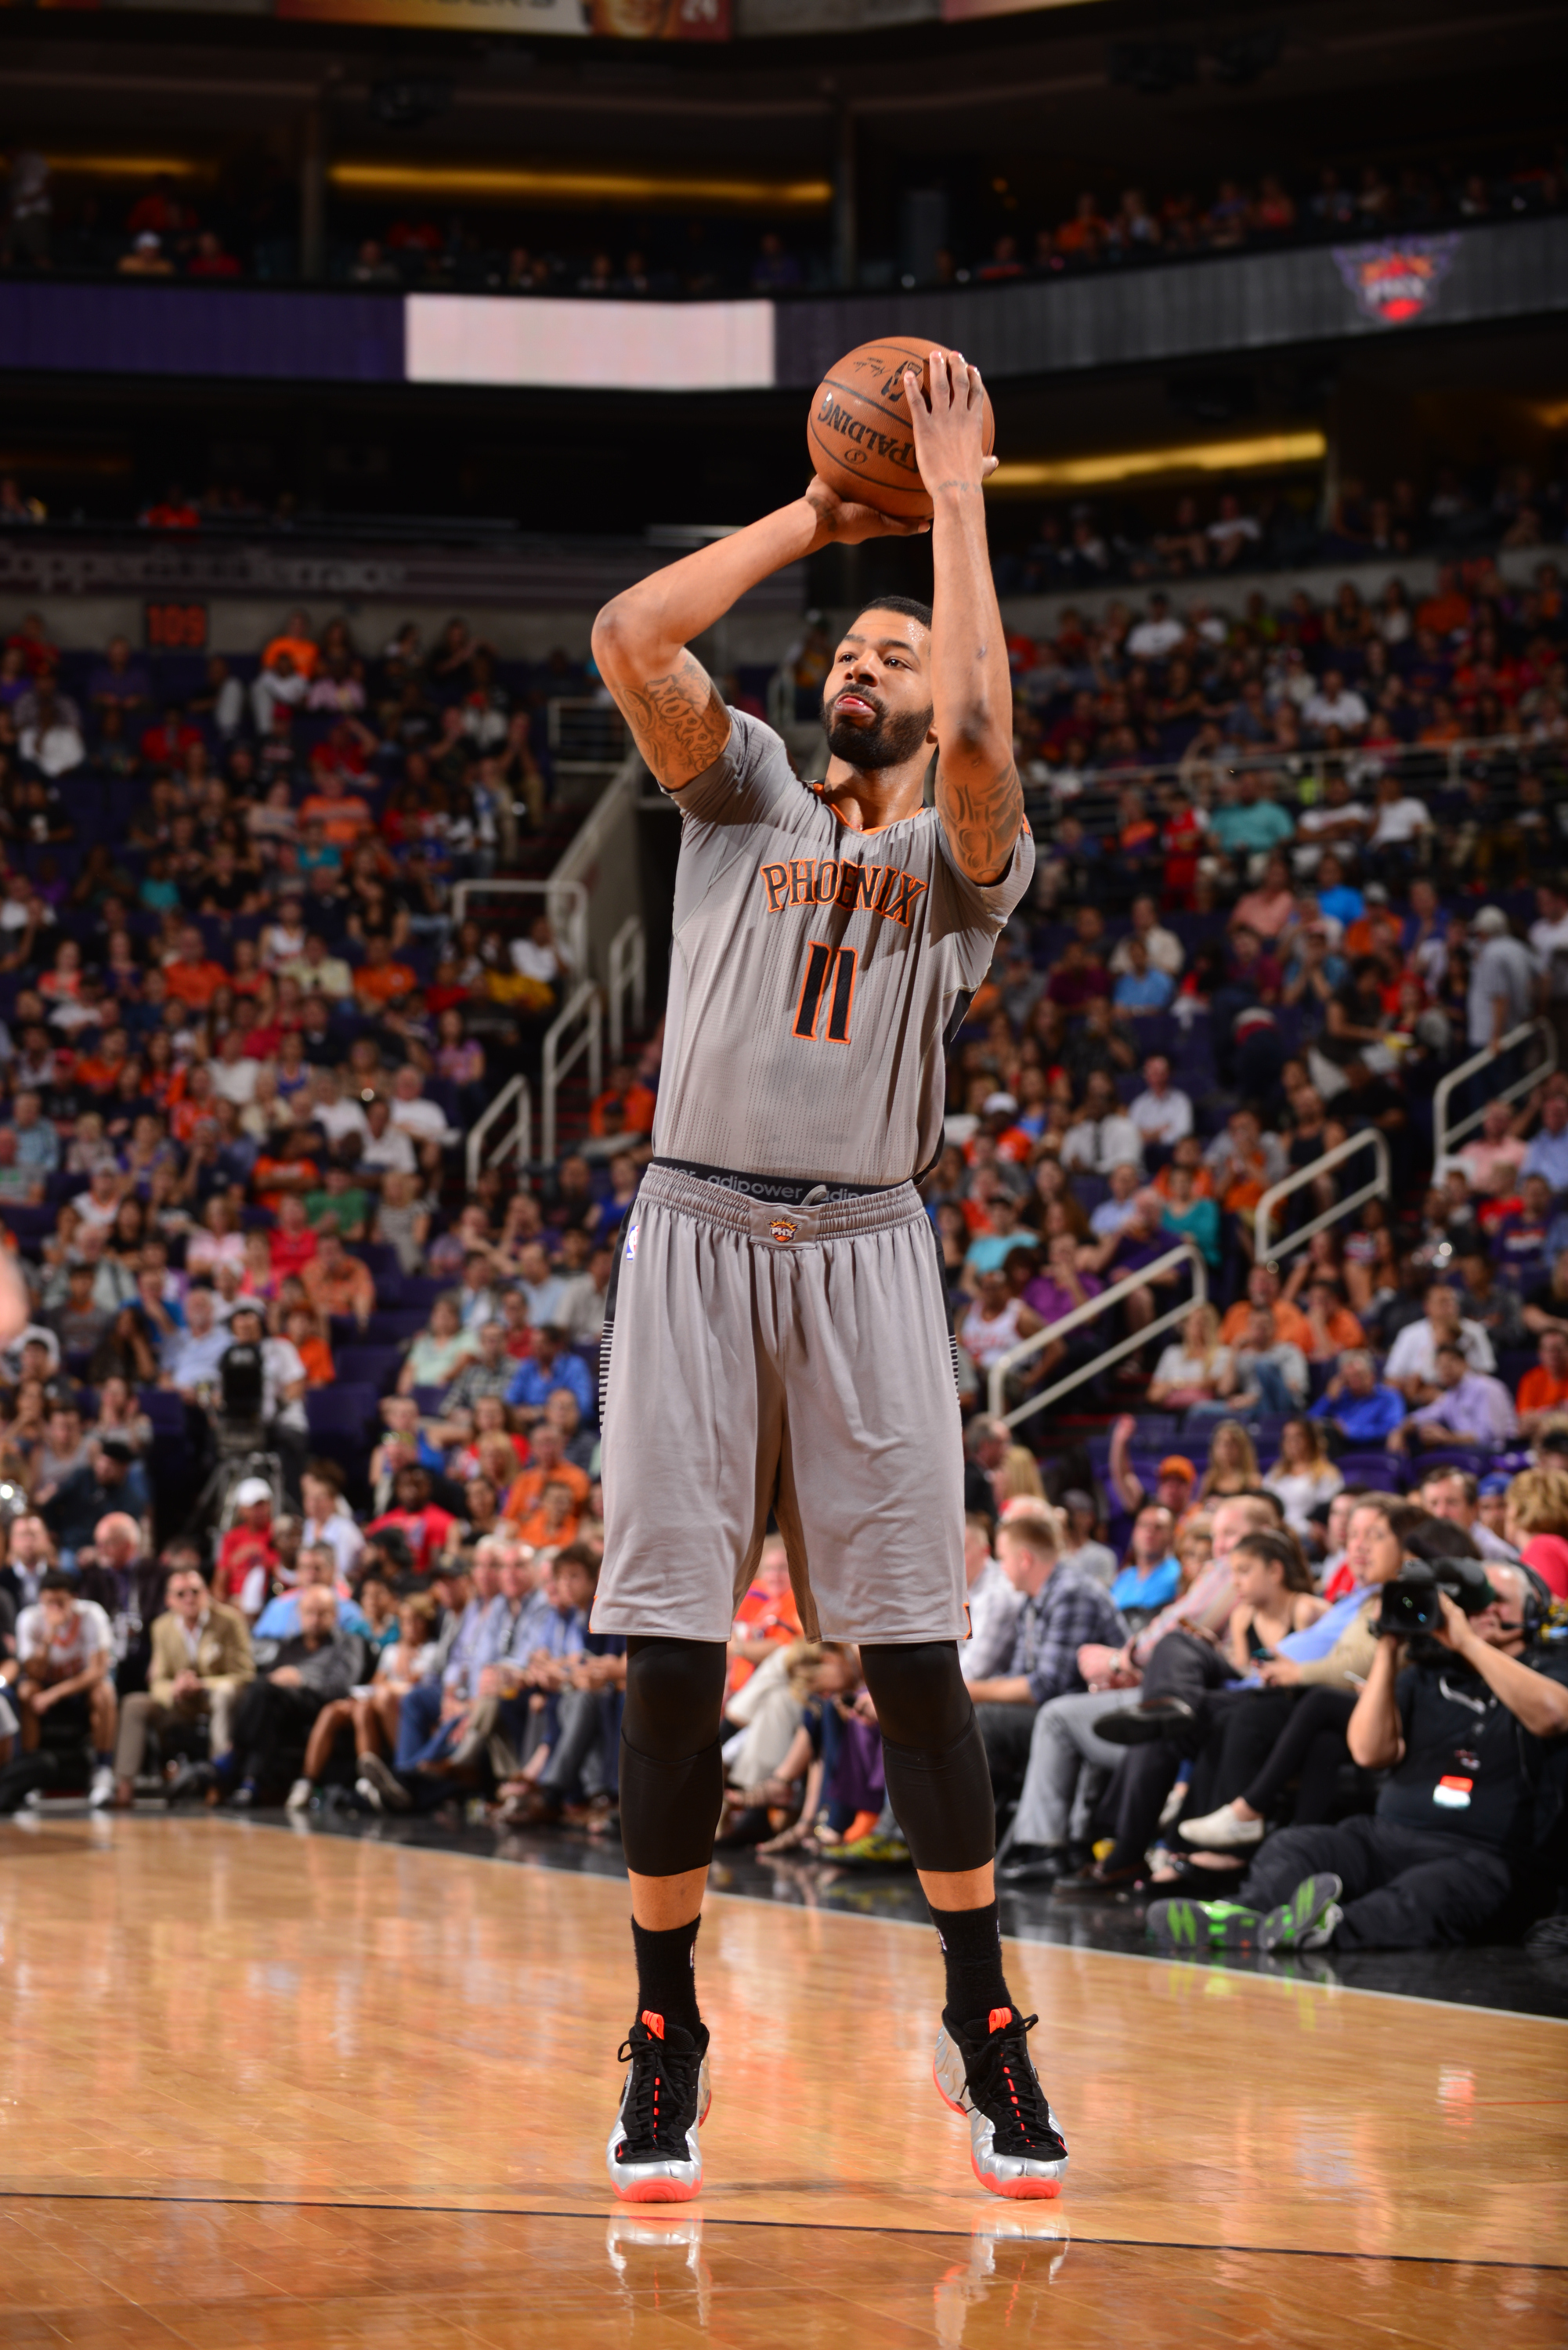 PHOENIX, AZ - APRIL 14: Markieff Morris #11 of the Phoenix Suns shoots against the Los Angeles Clippers on April 14, 2015 at U.S. Airways Center in Phoenix, Arizona. (Photo by Barry Gossage/NBAE via Getty Images)